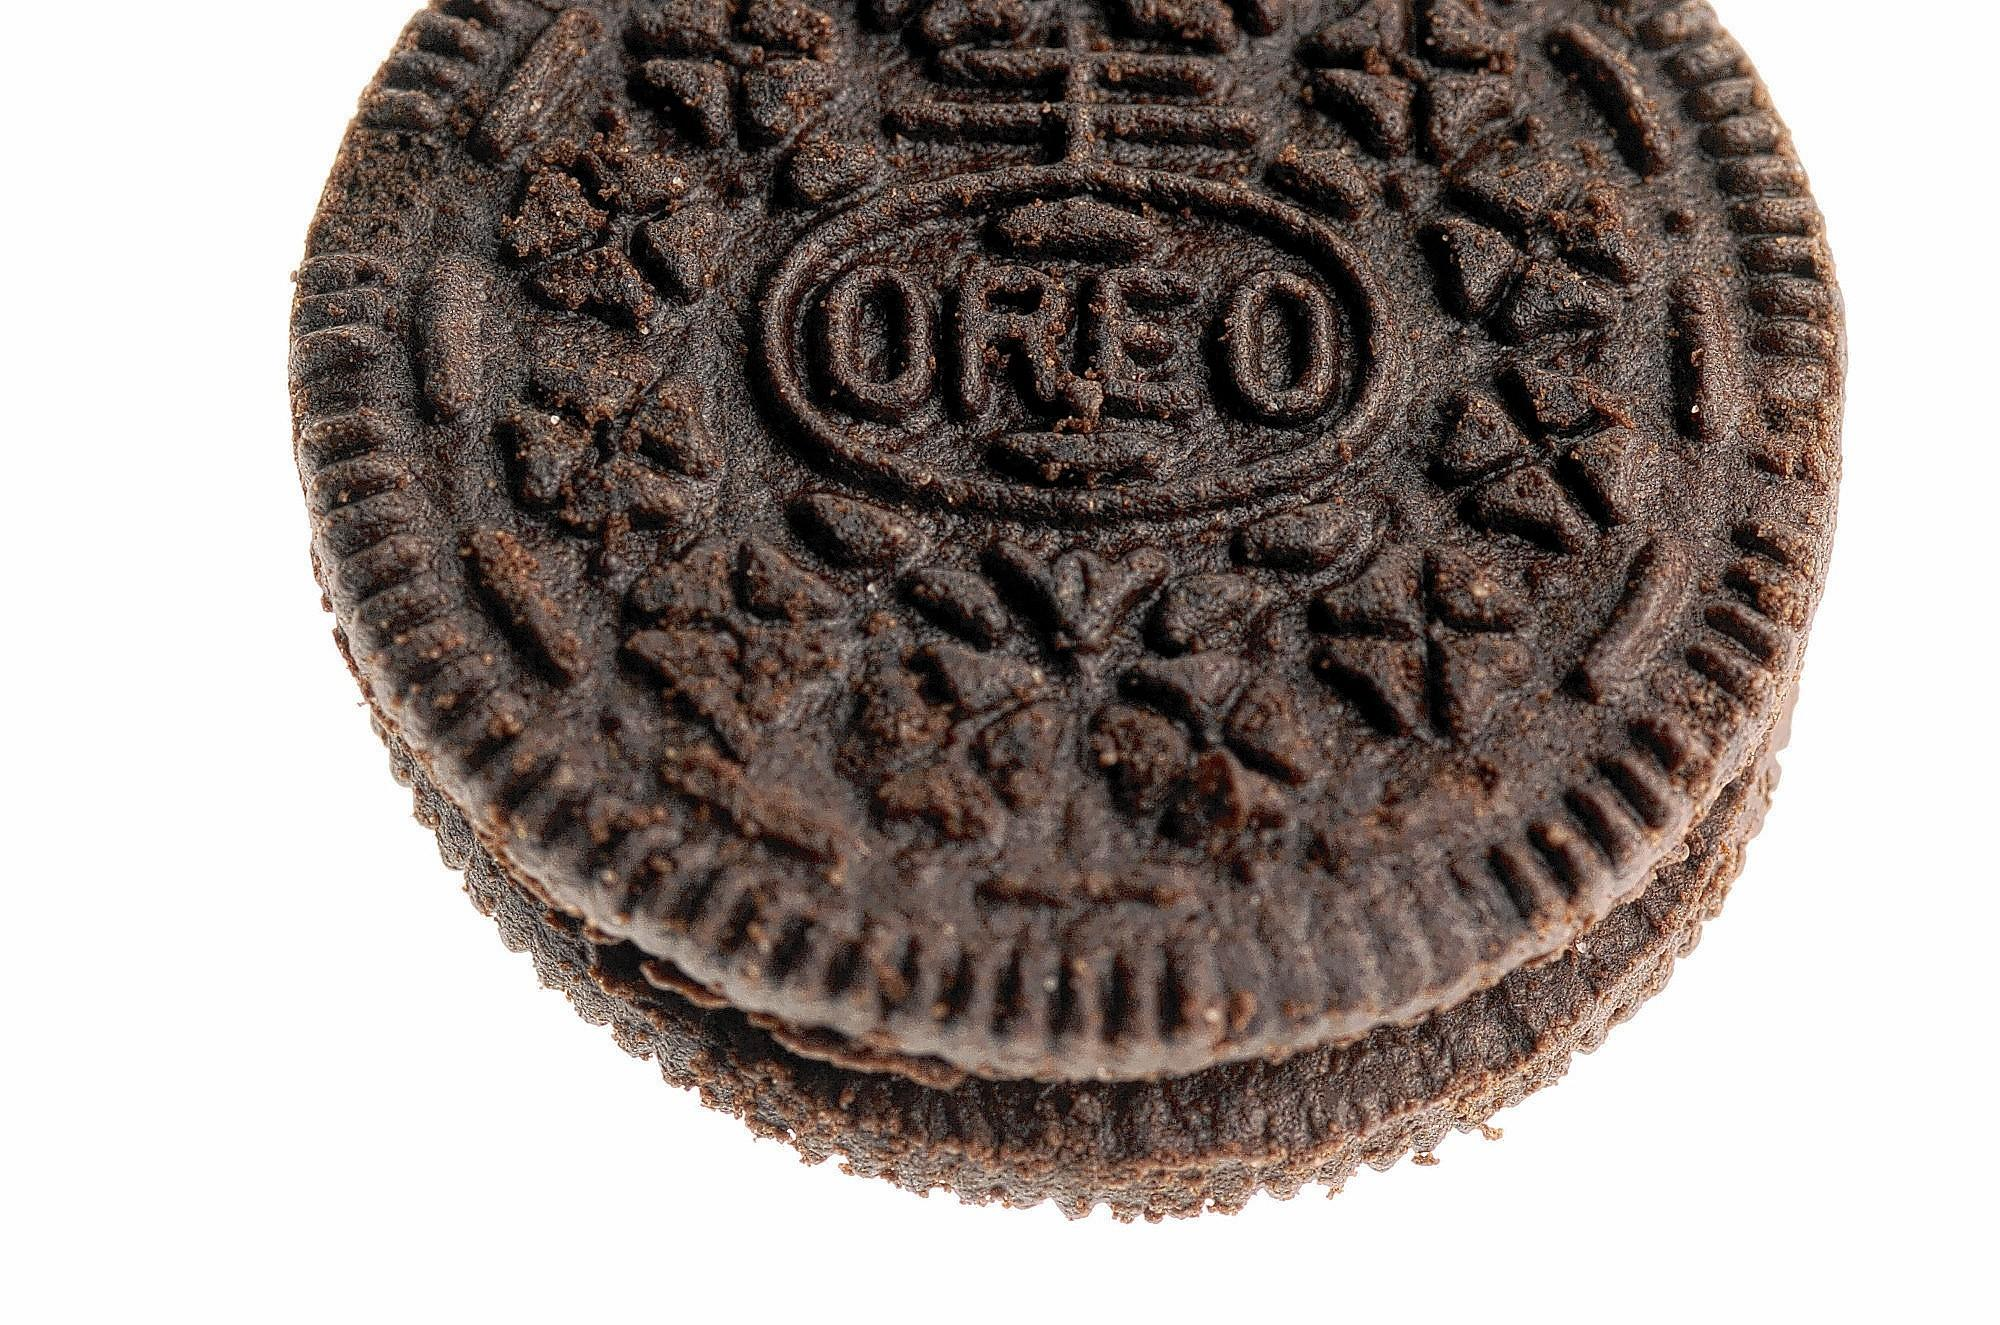 Mondelez International, maker of Oreos and other treats, aims to increase the number of its 200-calorie snack packages.